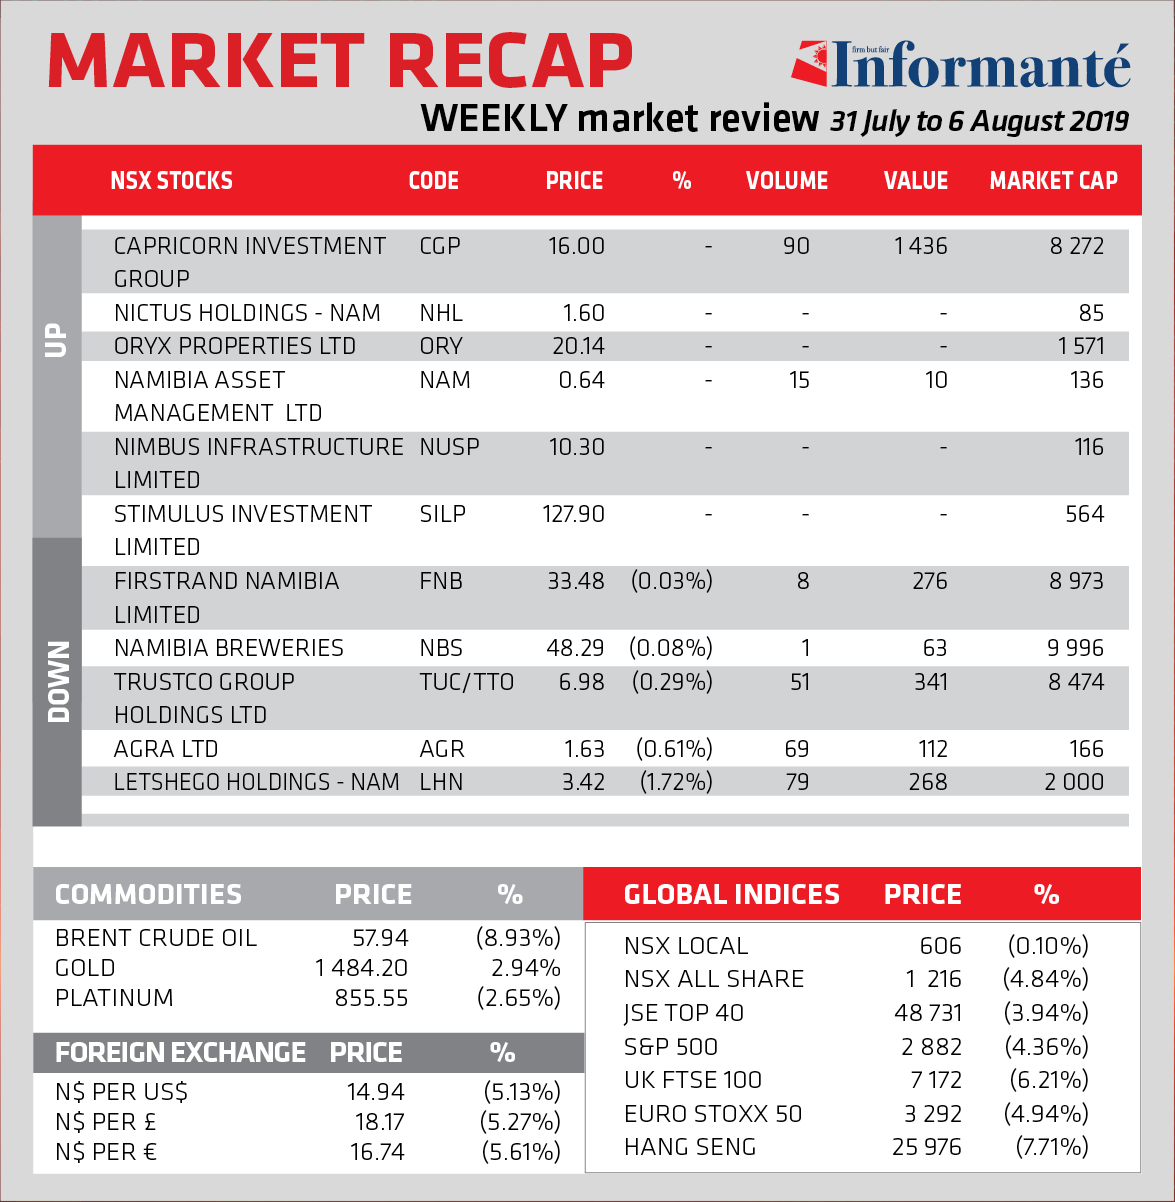 Weekly market review - 31 July to 6 August 2019 - Informanté